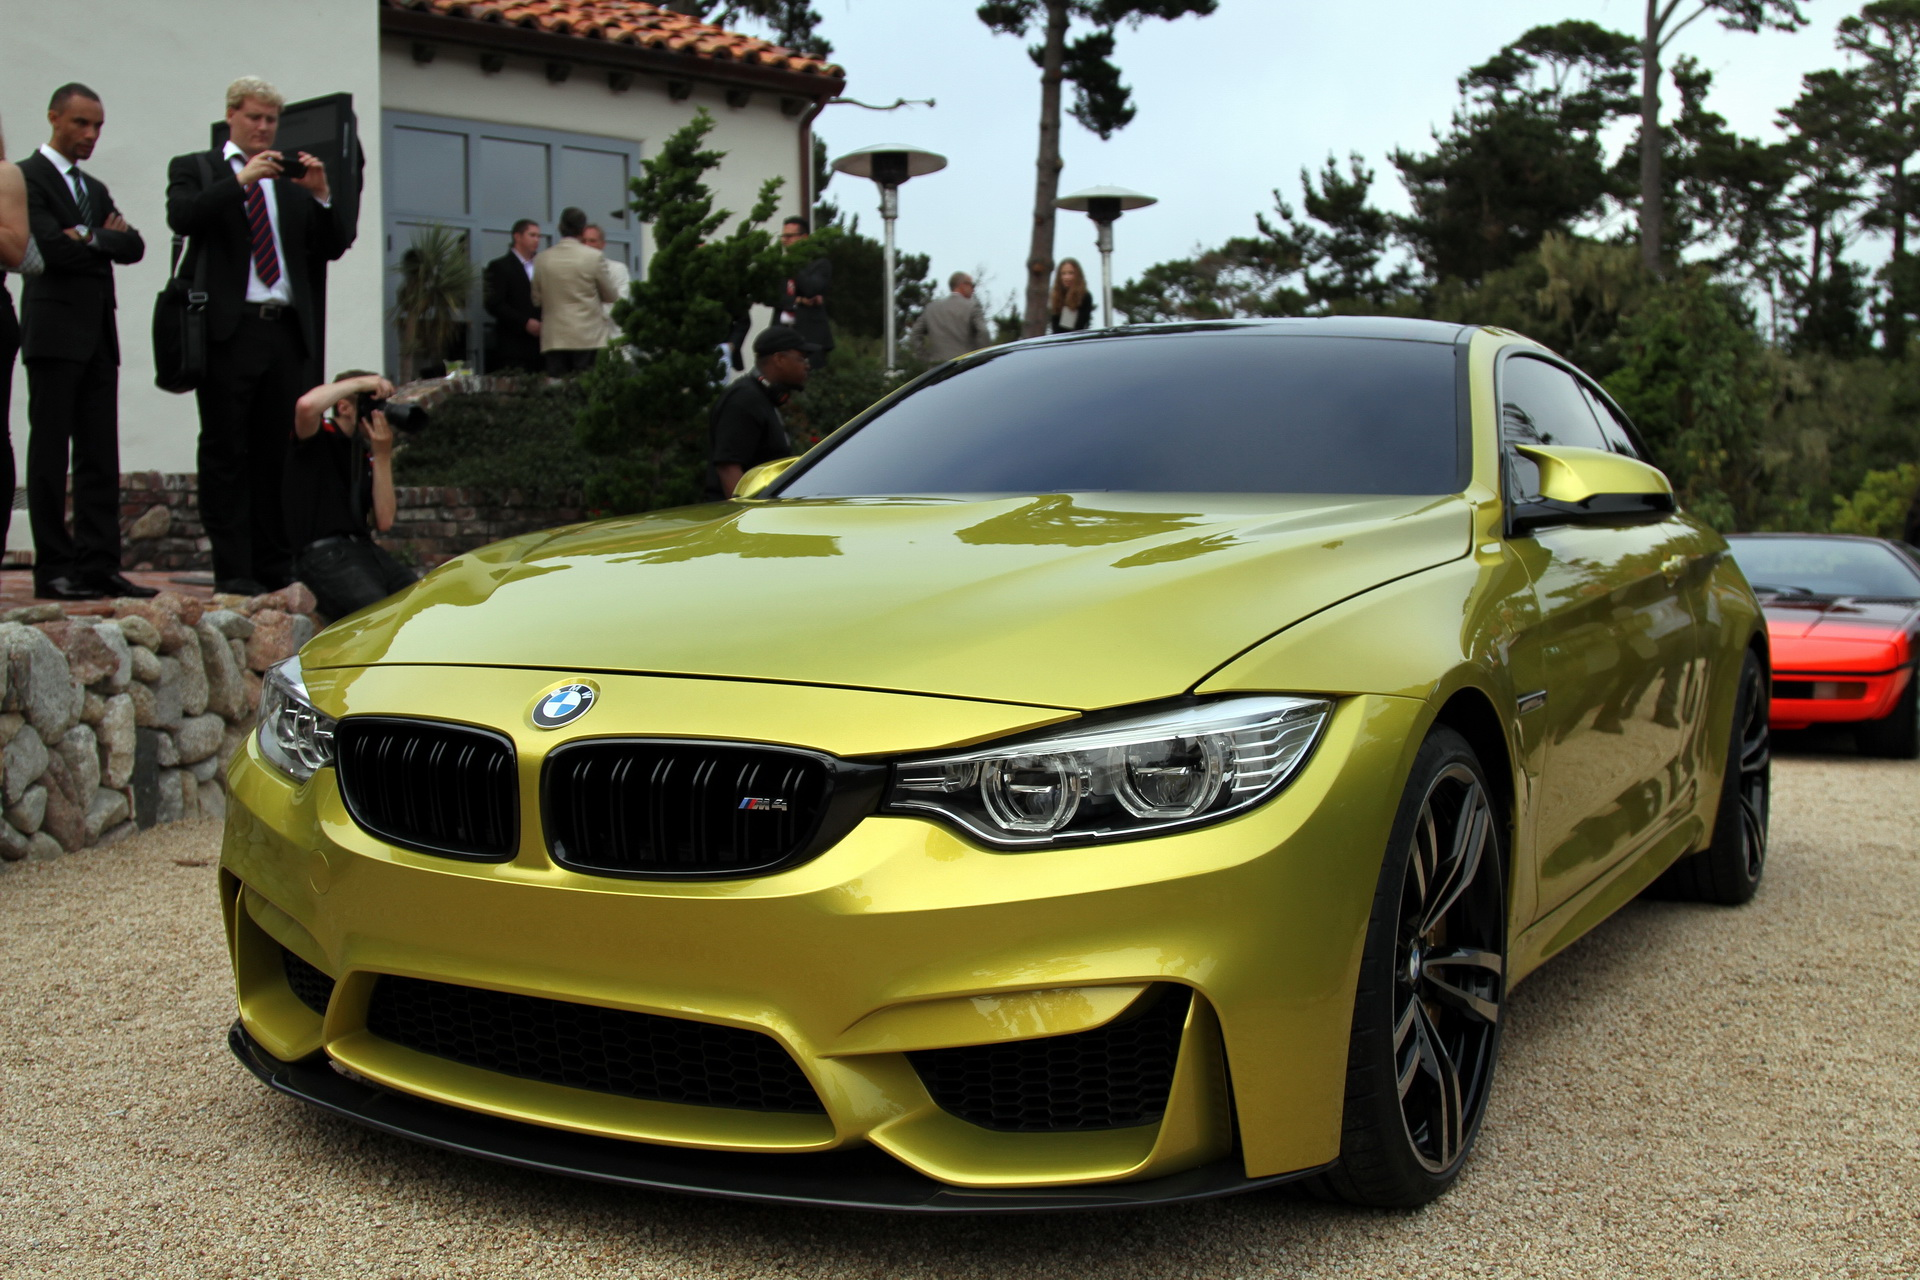 The Bmw M3 M4 Will Have An Optional Manual Bimmerfile